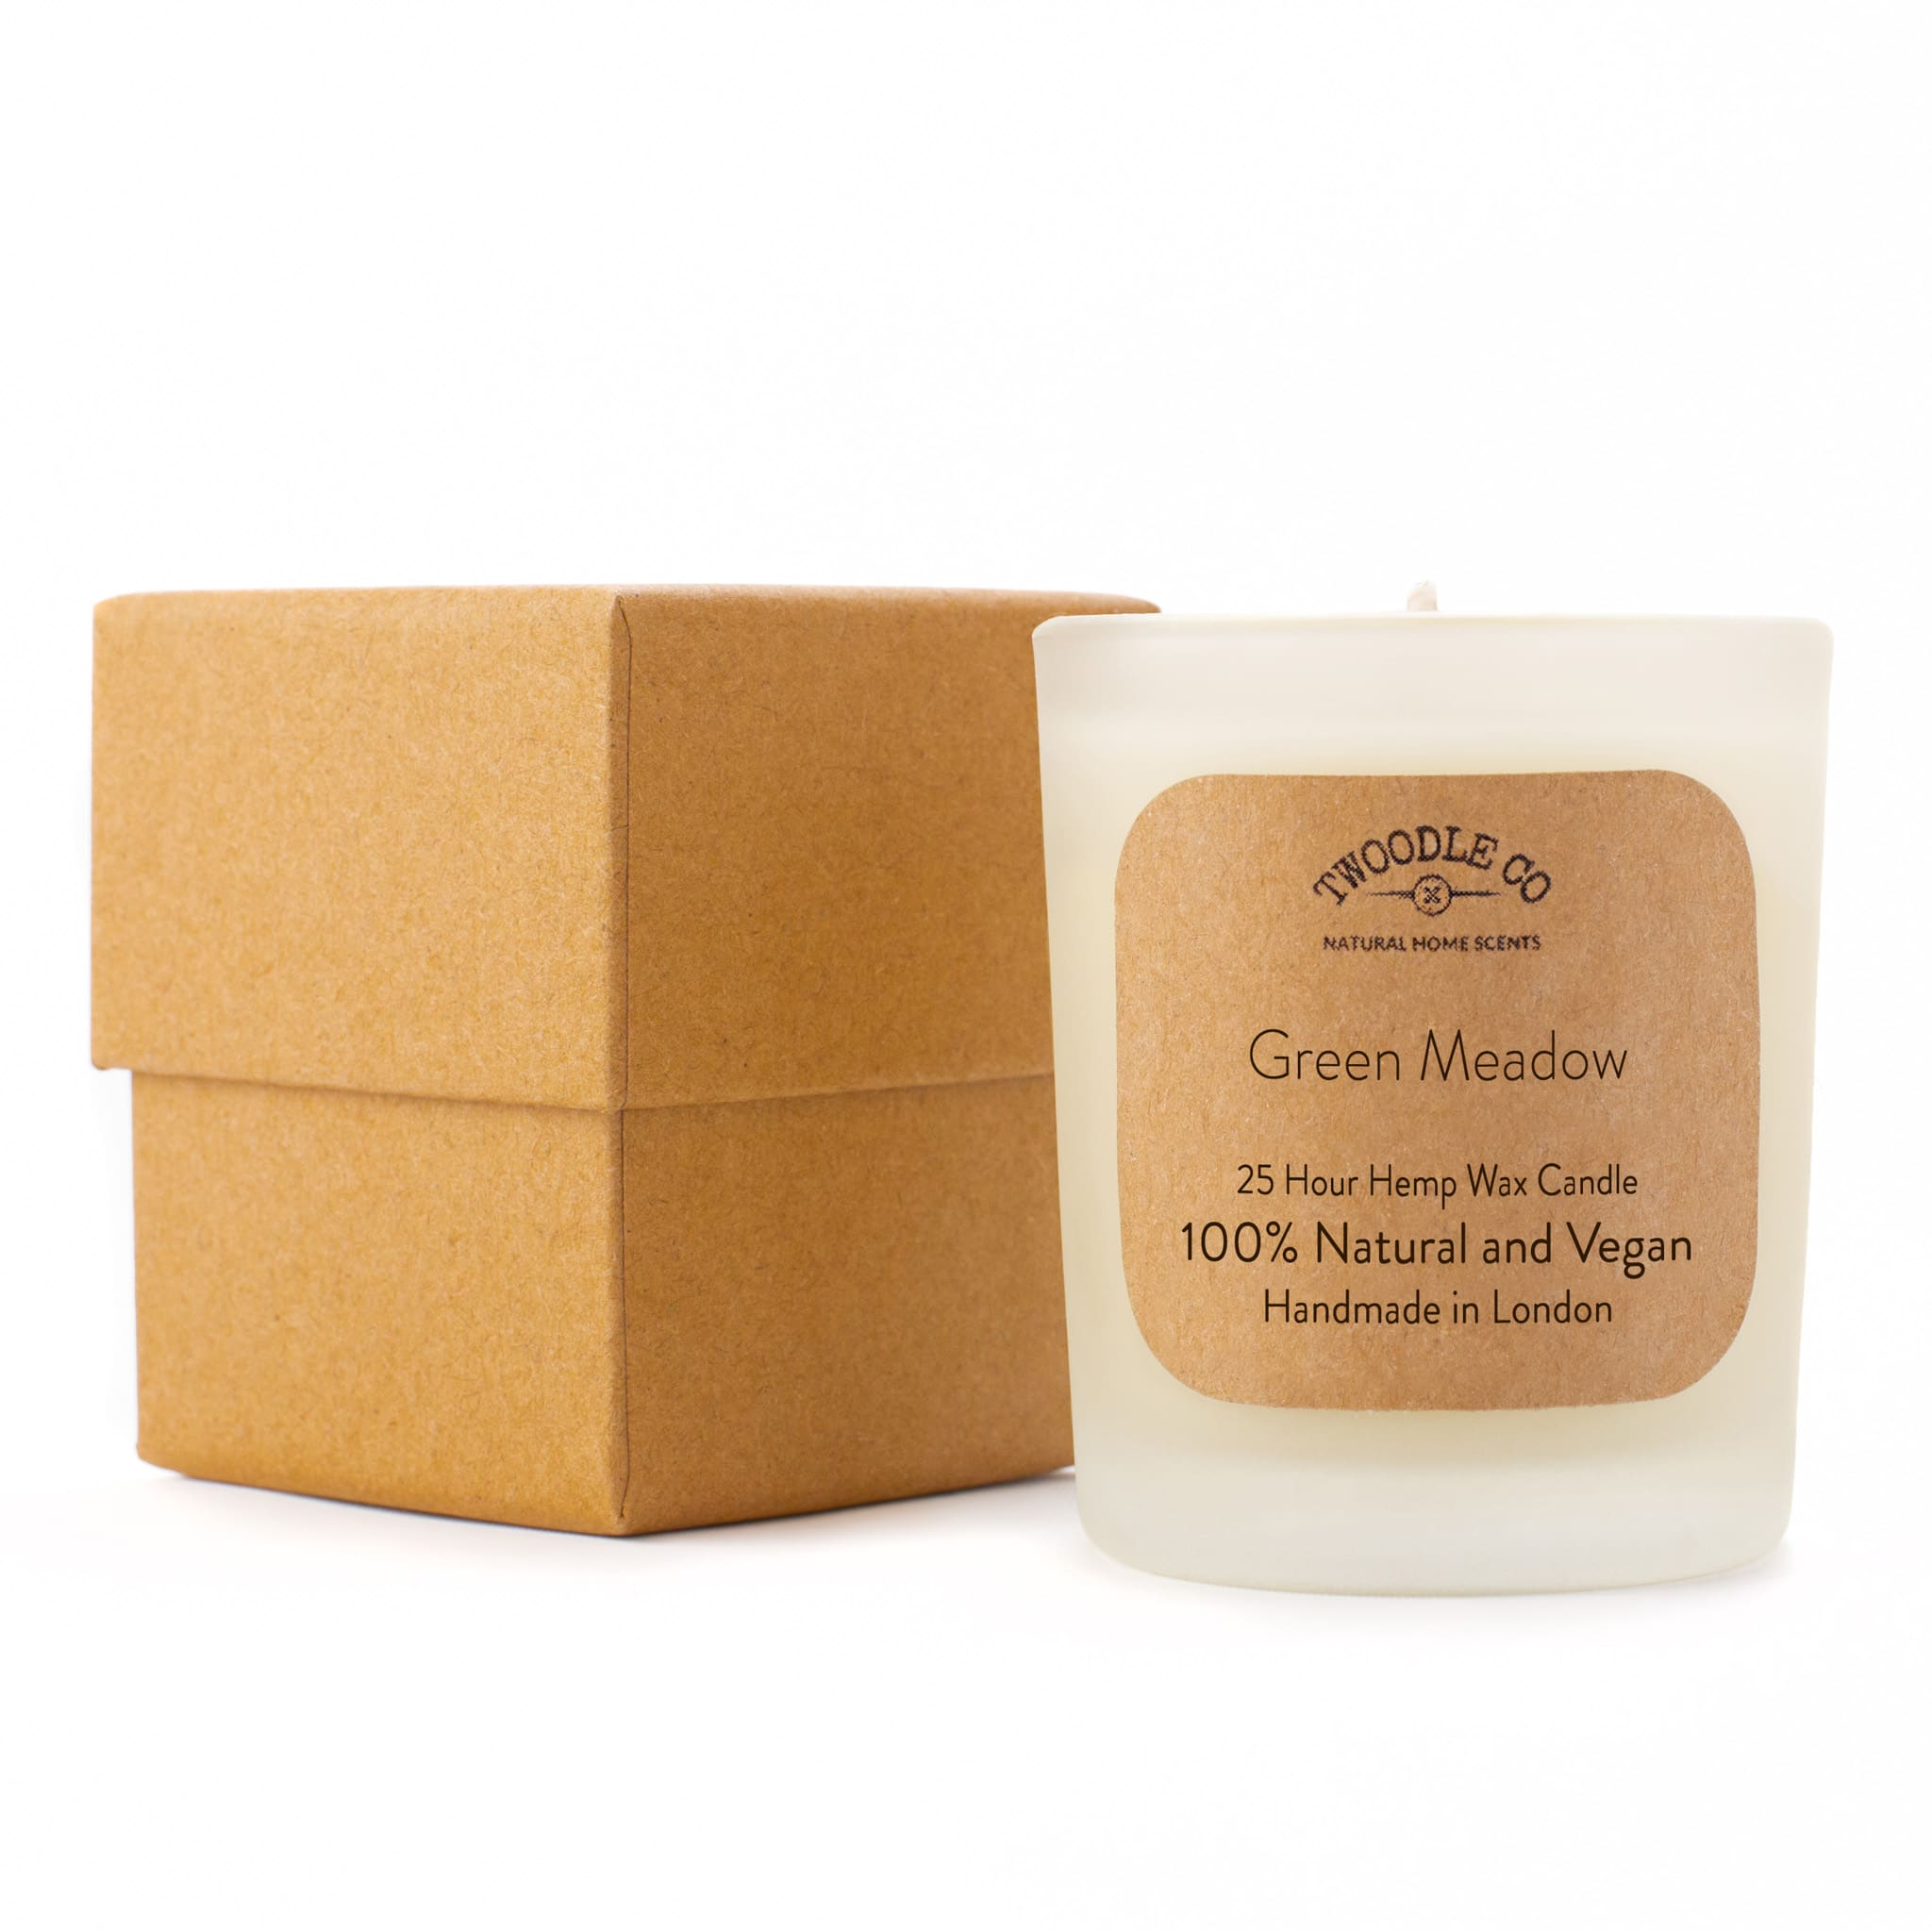 Green Meadow Small Scented Hemp Wax Christmas candle by Twoodle Co Natural Home Scents